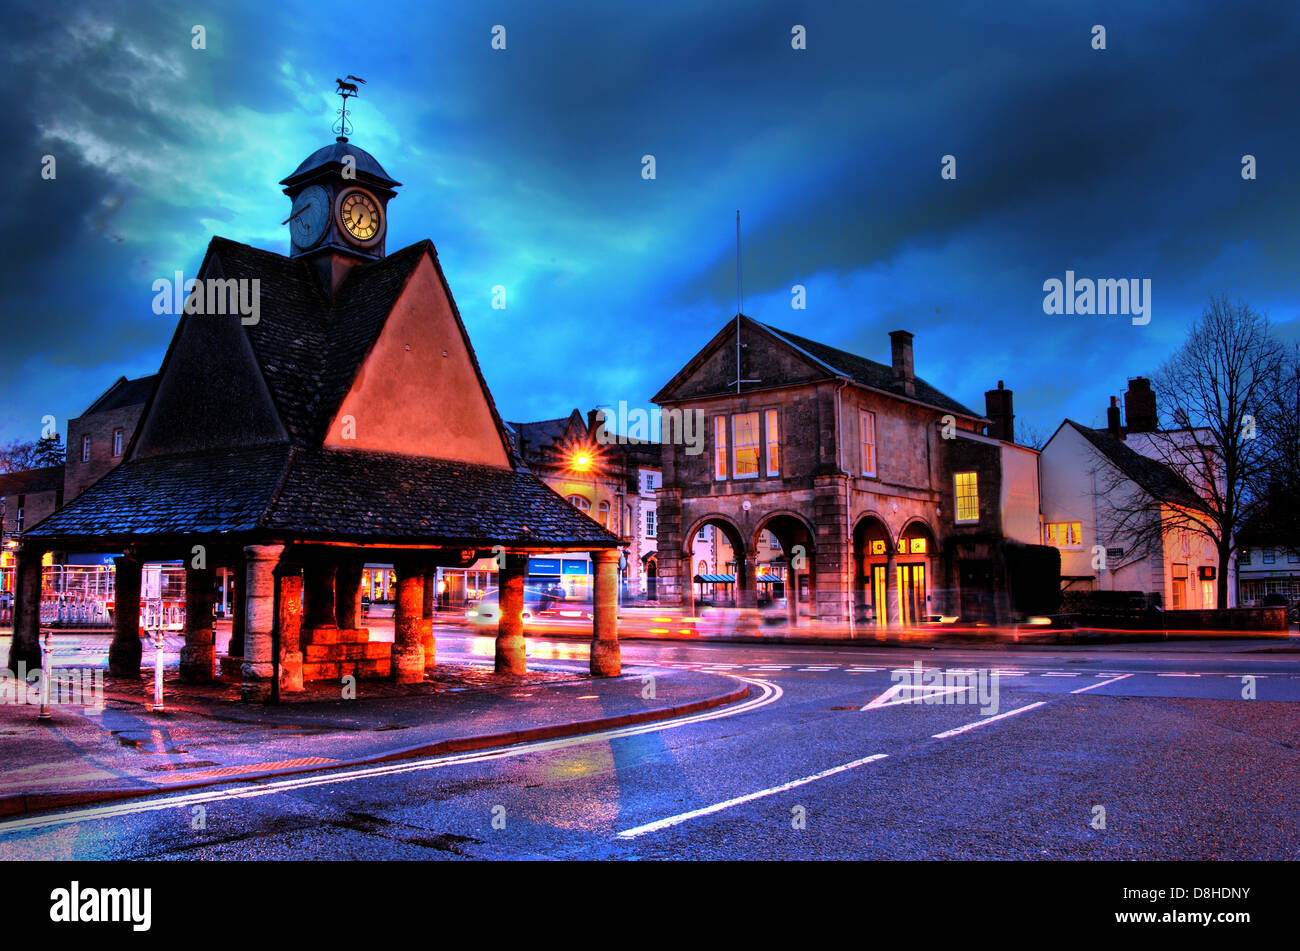 Oxfordshire,dusk,night,England,English,town,towns,historic,history,town,hall,townhall,buttercross,butter,cross,Cotswold,Cotswolds,river,Windrush,old,olde,traditional,tradition,medieval,times,circular,stepped,bases,base,clock,village,green,tourist,travel,tourist,destination,rain,showers,shower,WODC,Gotonysmith,moody,sky,dark,west,district,council,local,authority,GB,great,Britain,British,road,streets,street,Buy Pictures of,Buy Images Of